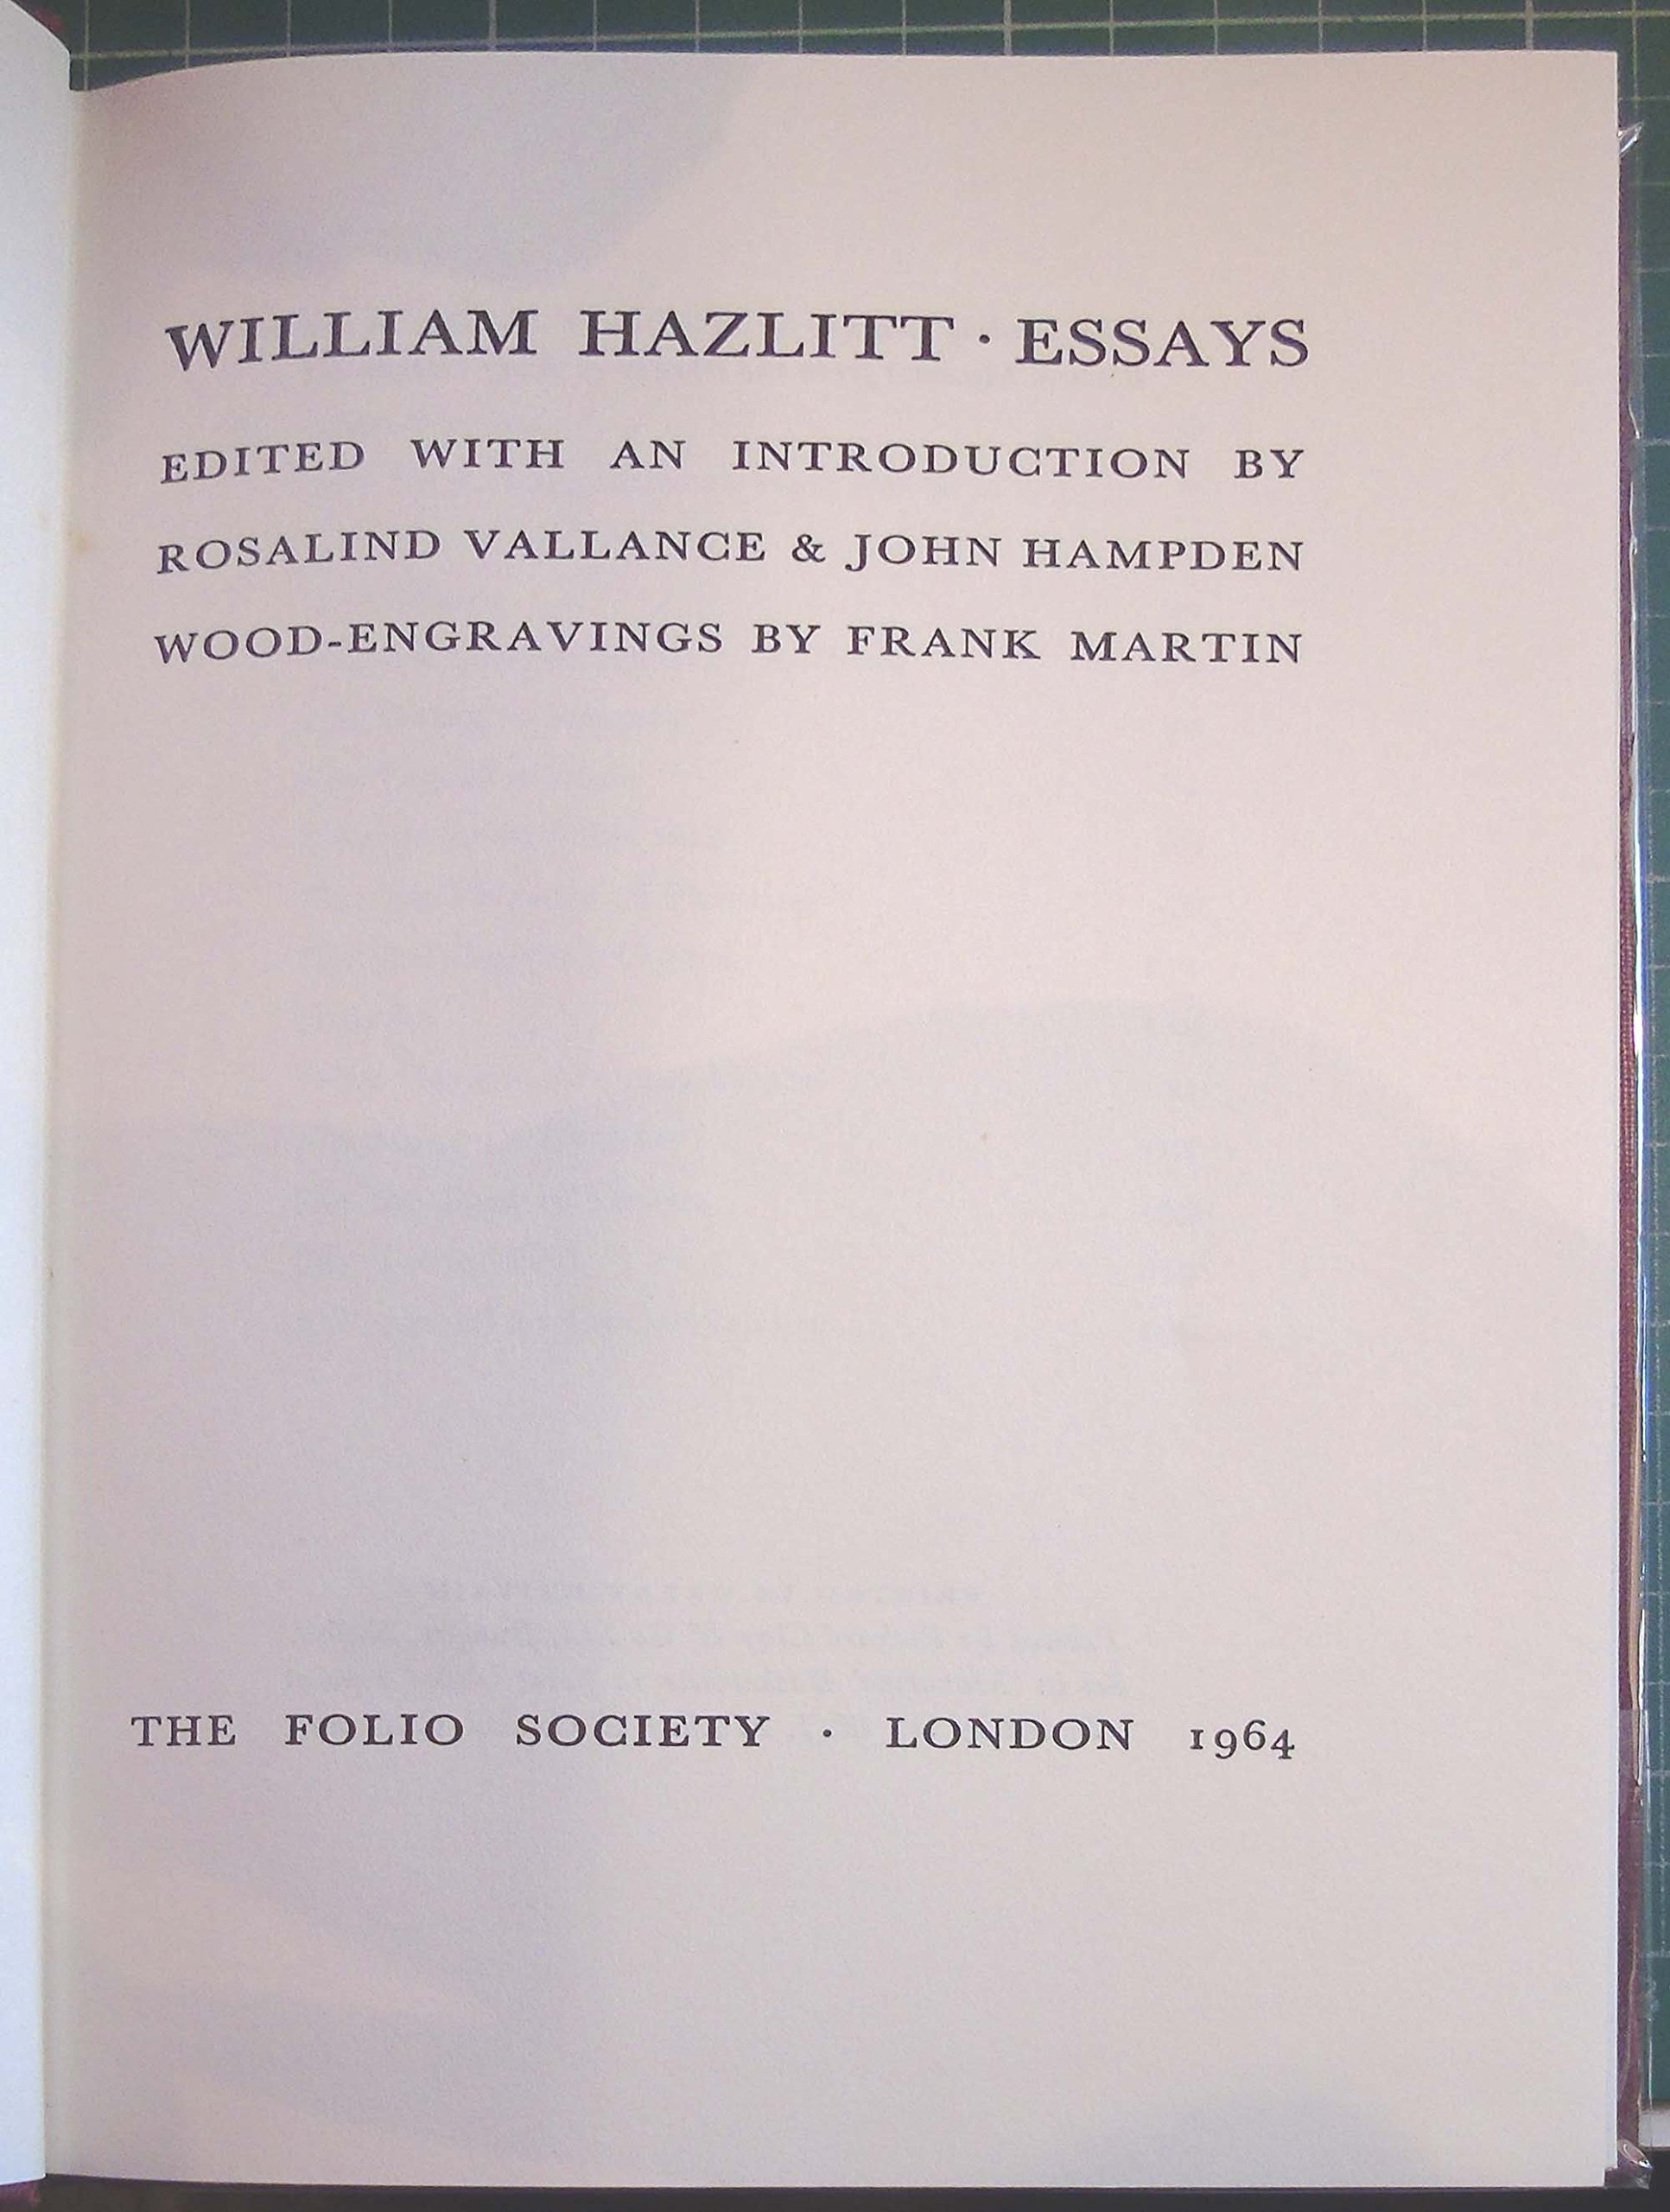 Sample Narrative Essay High School William Hazlitt Essays Amazoncouk William Edited By Rosalind Vallance  And John Hampden Hazlitt Frank Martin Books English Essay About Environment also Example Essay Thesis William Hazlitt Essays Amazoncouk William Edited By Rosalind  Examples Of Essays For High School